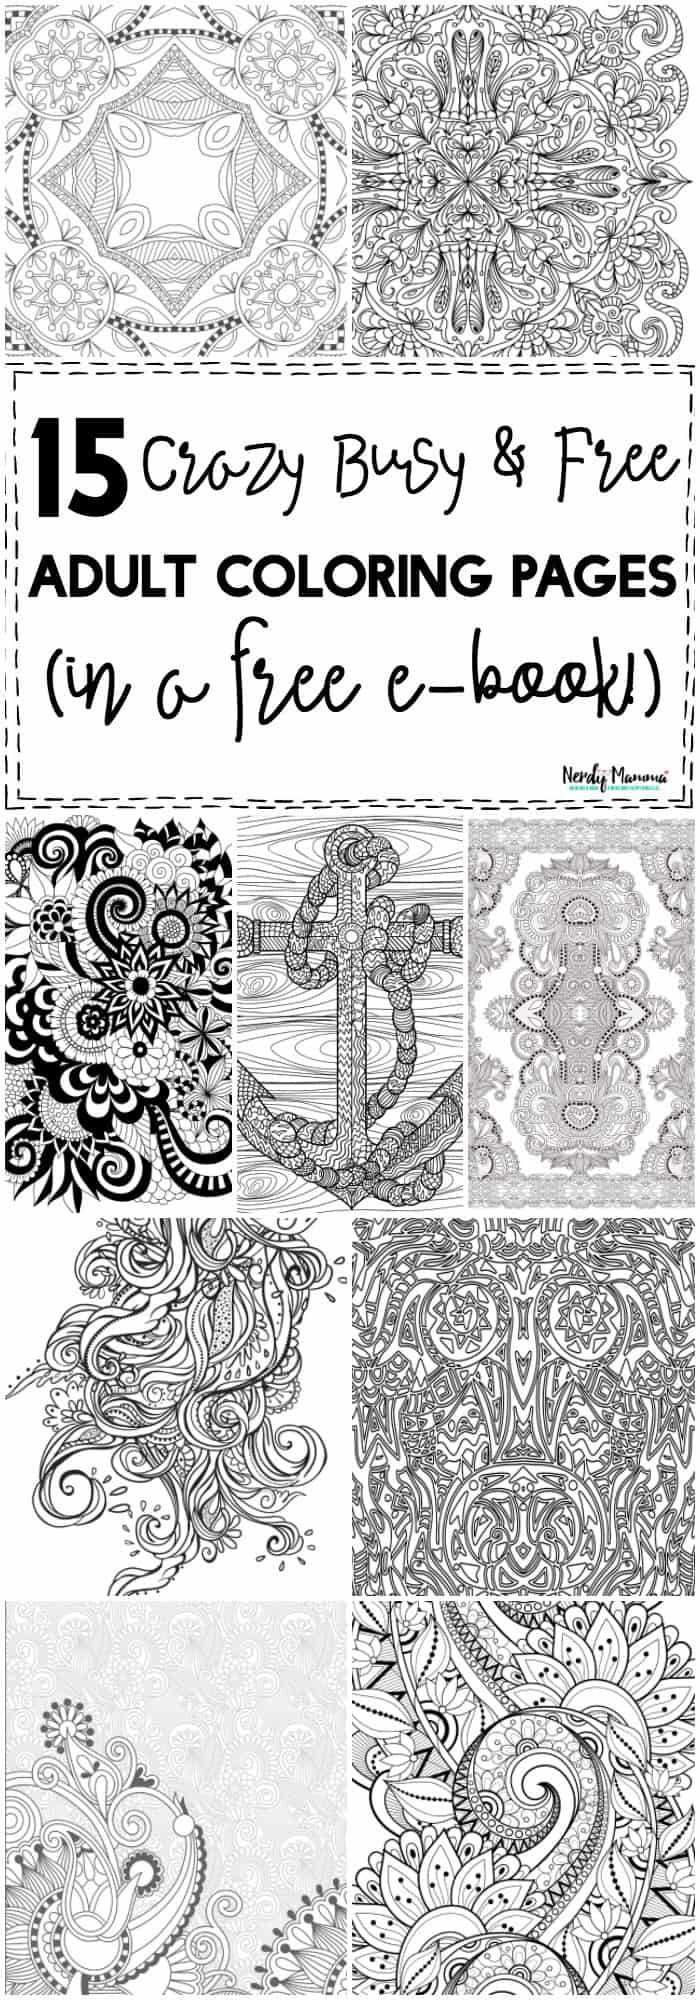 15 CRAZY Busy Coloring Pages for Adults Page 10 of 16 Nerdy Mamma